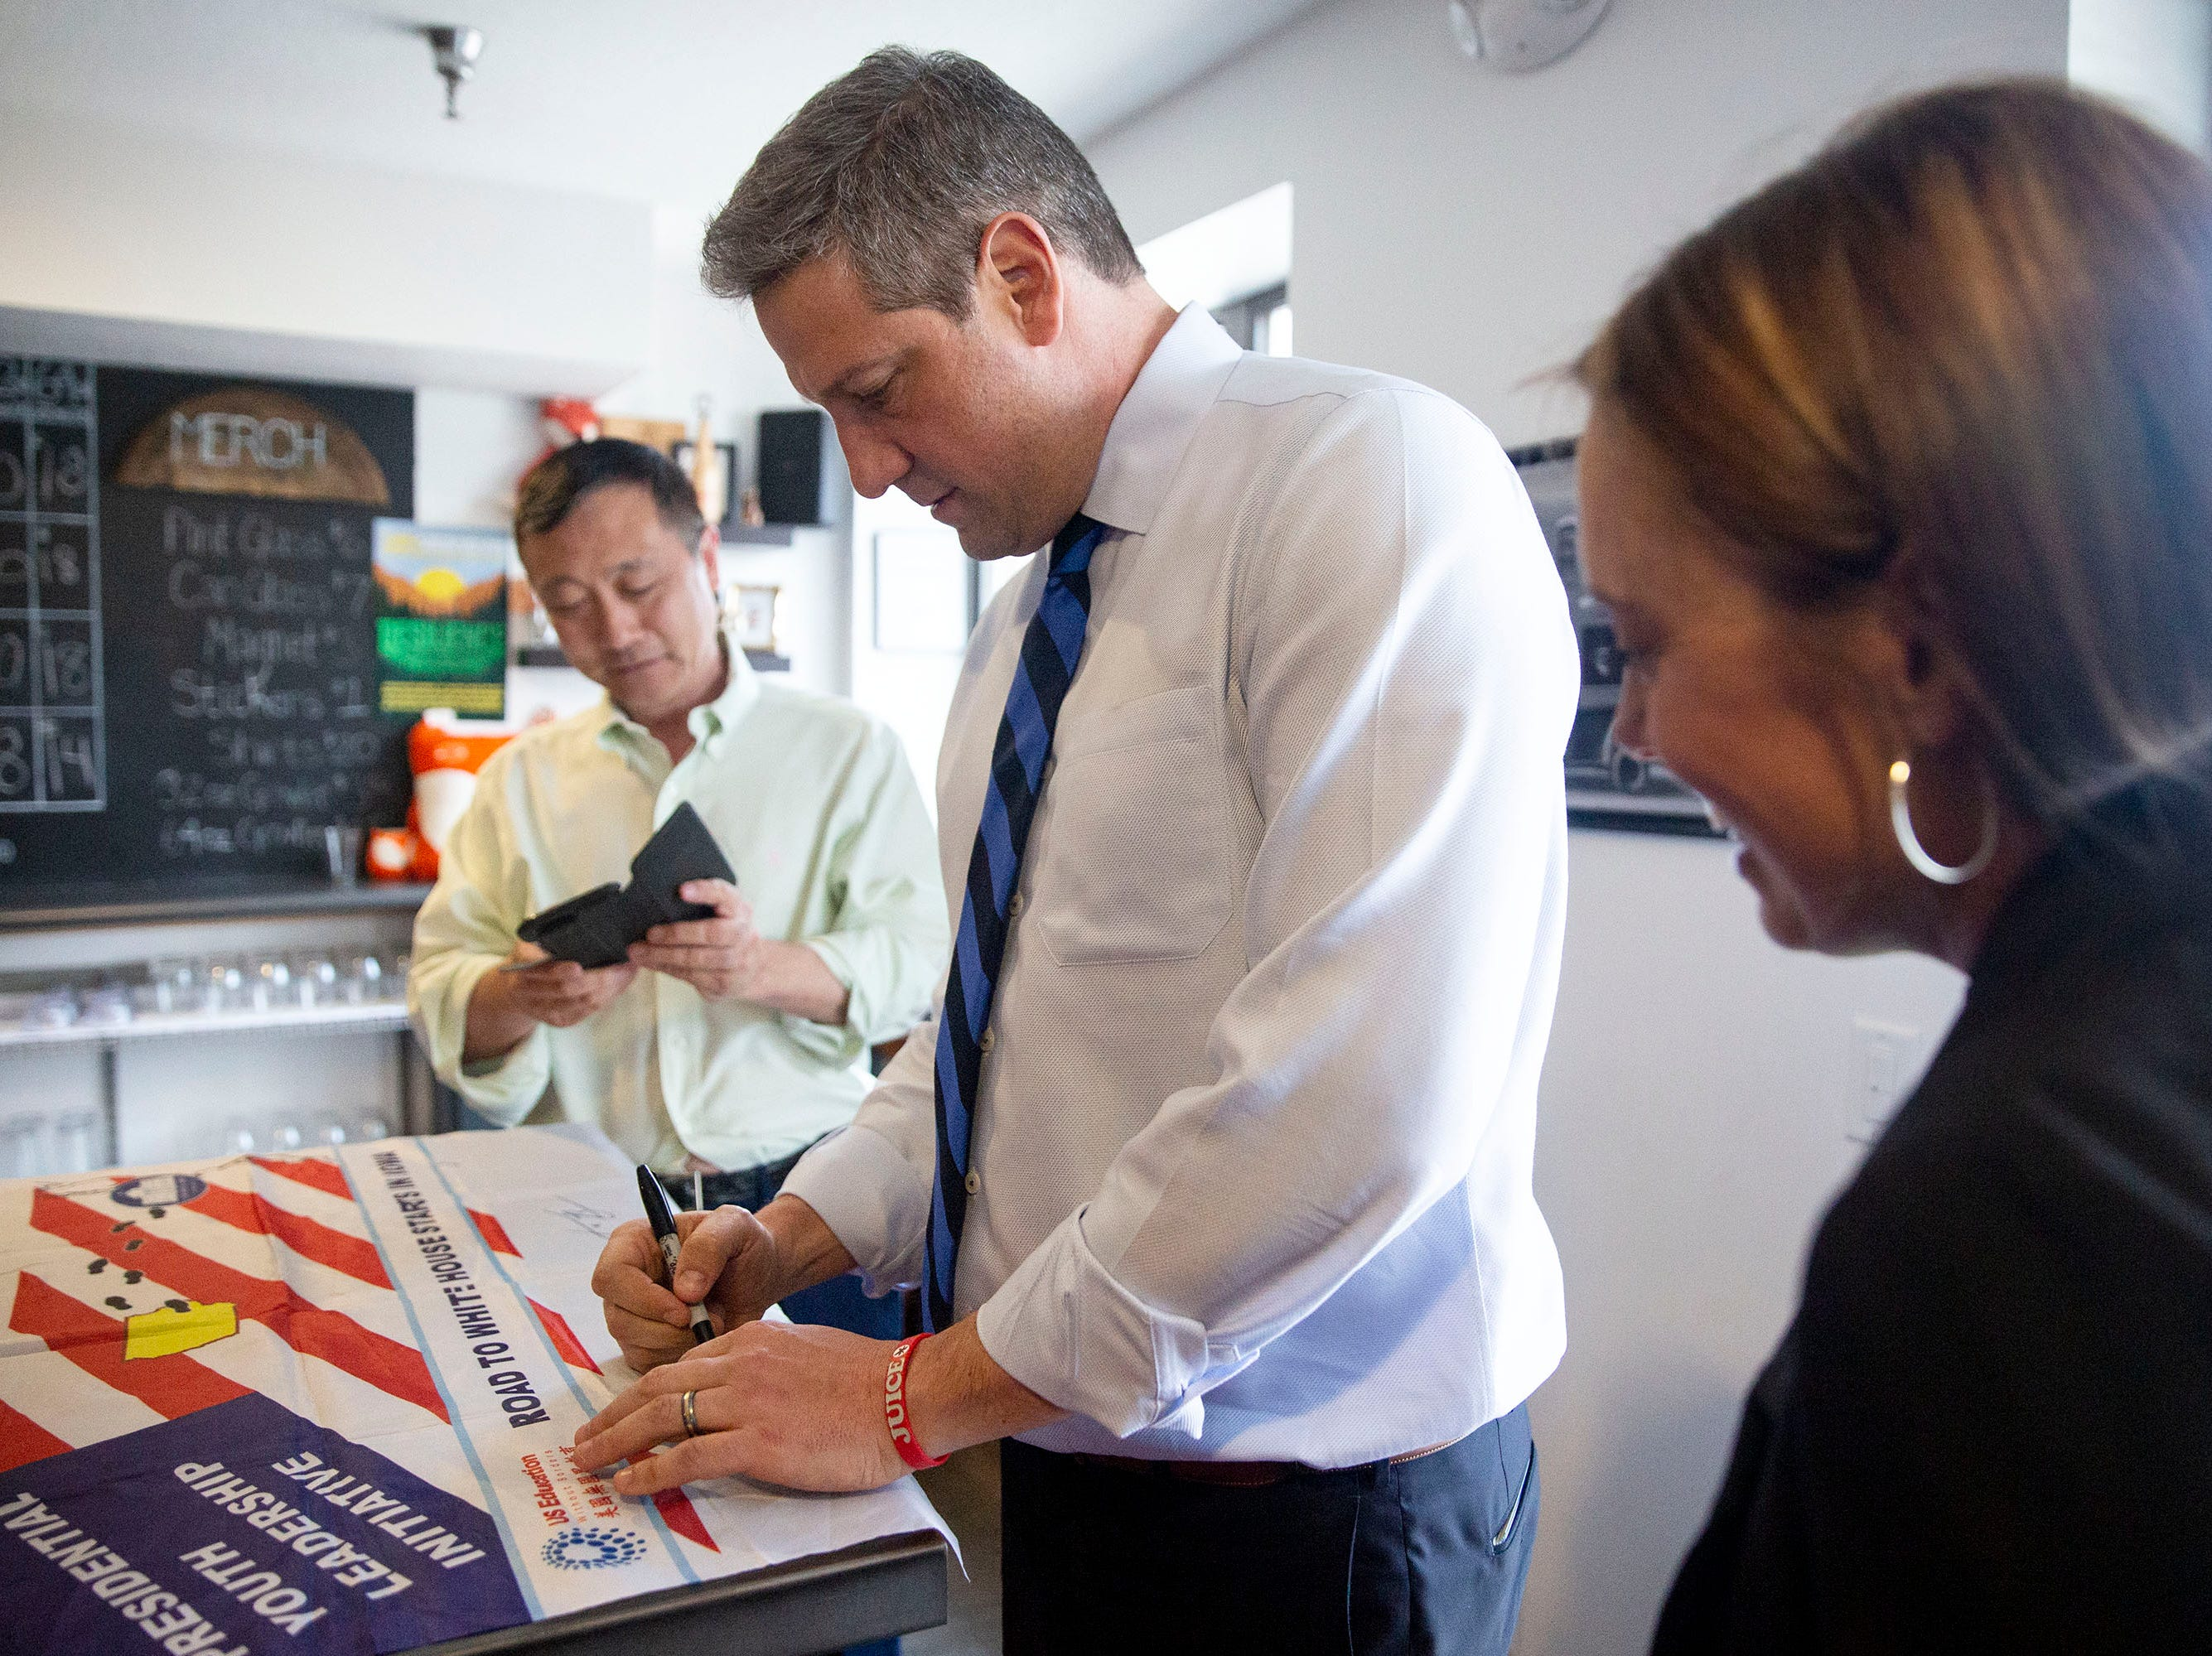 U.S. Rep. Tim Ryan, D-Ohio, signs his autograph before a meet and greet event organized by the Polk County Democrats on Sunday, April 7, 2019, at Fox Brewing in West Des Moines. This is Ryan's first visit to Iowa after announcing he's running for president.